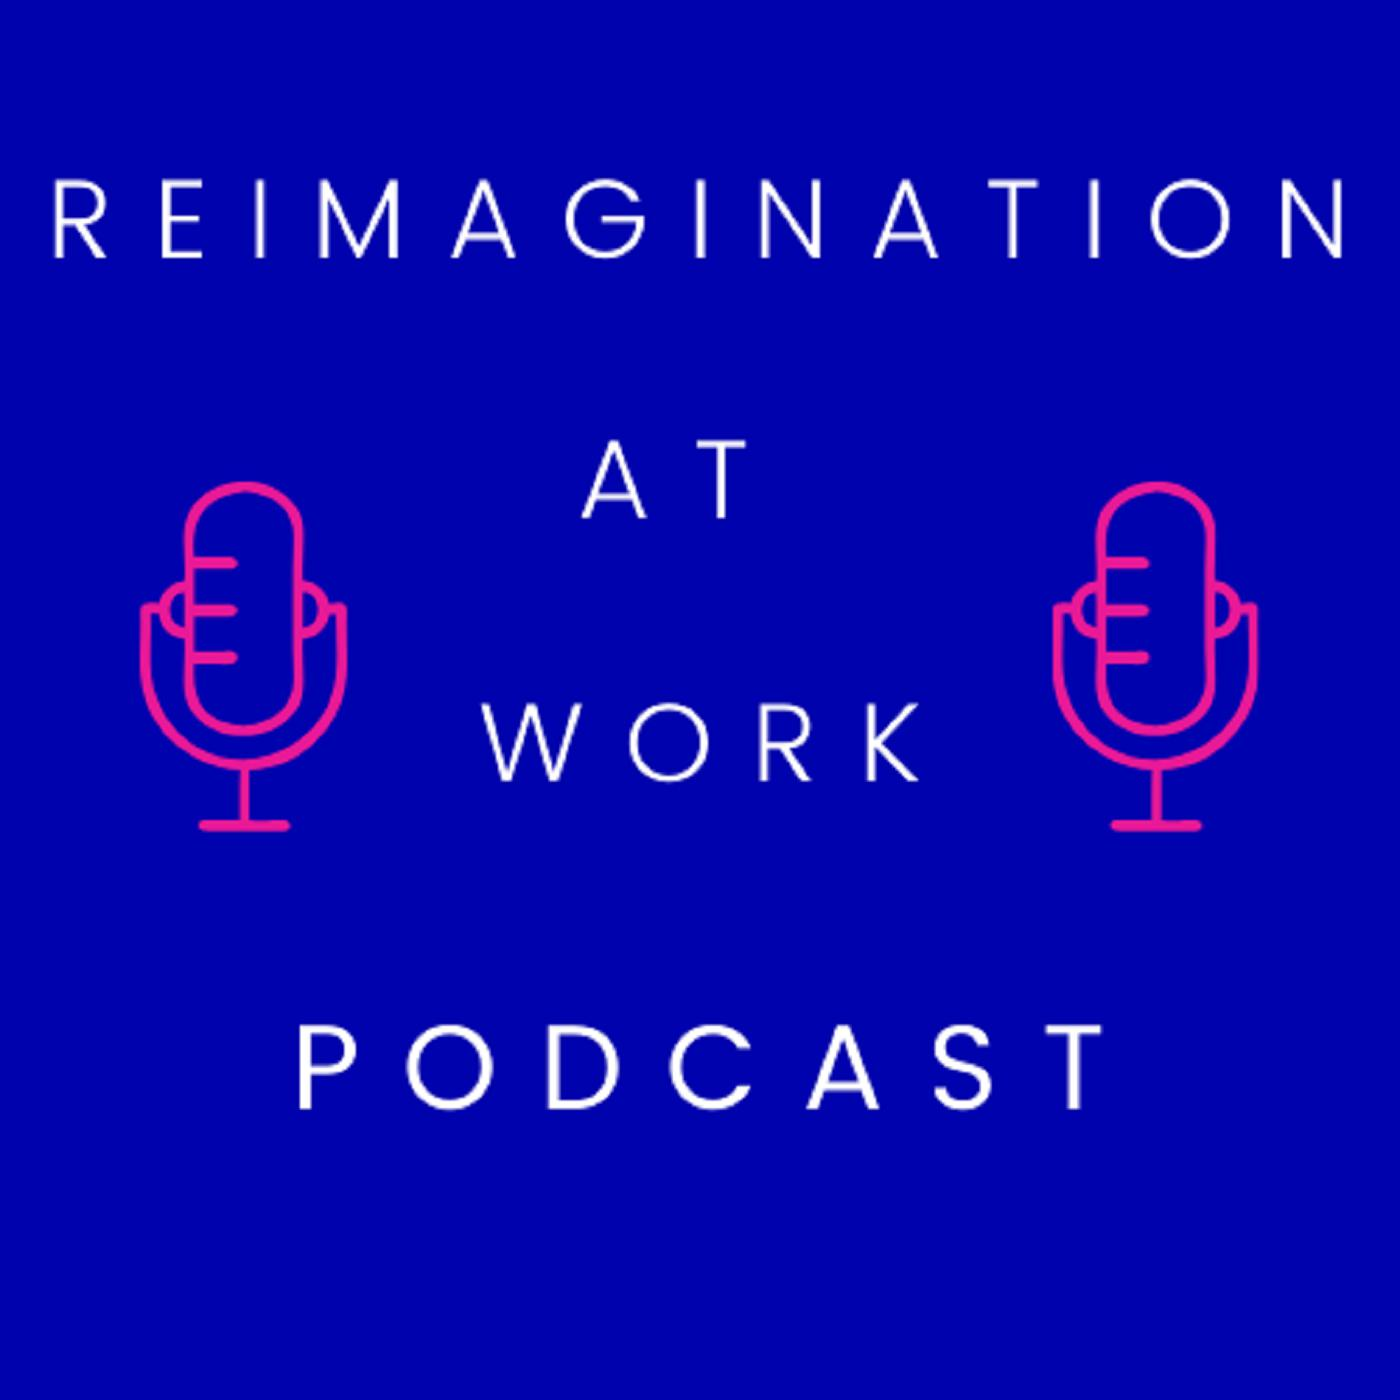 Introduction To Reimagination at Work